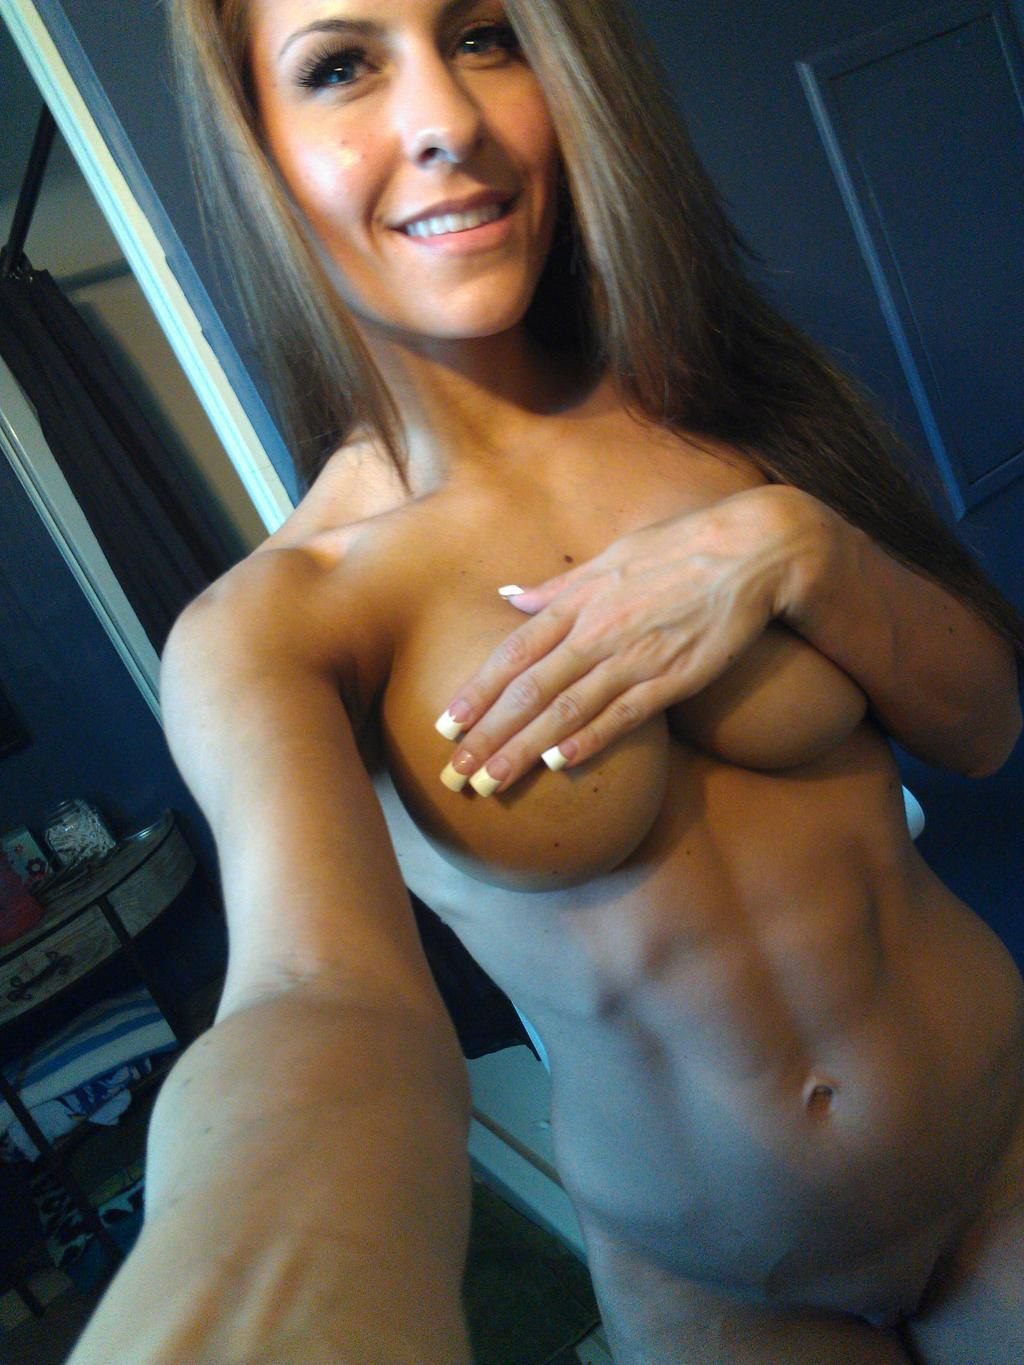 Fit Girl Webcam